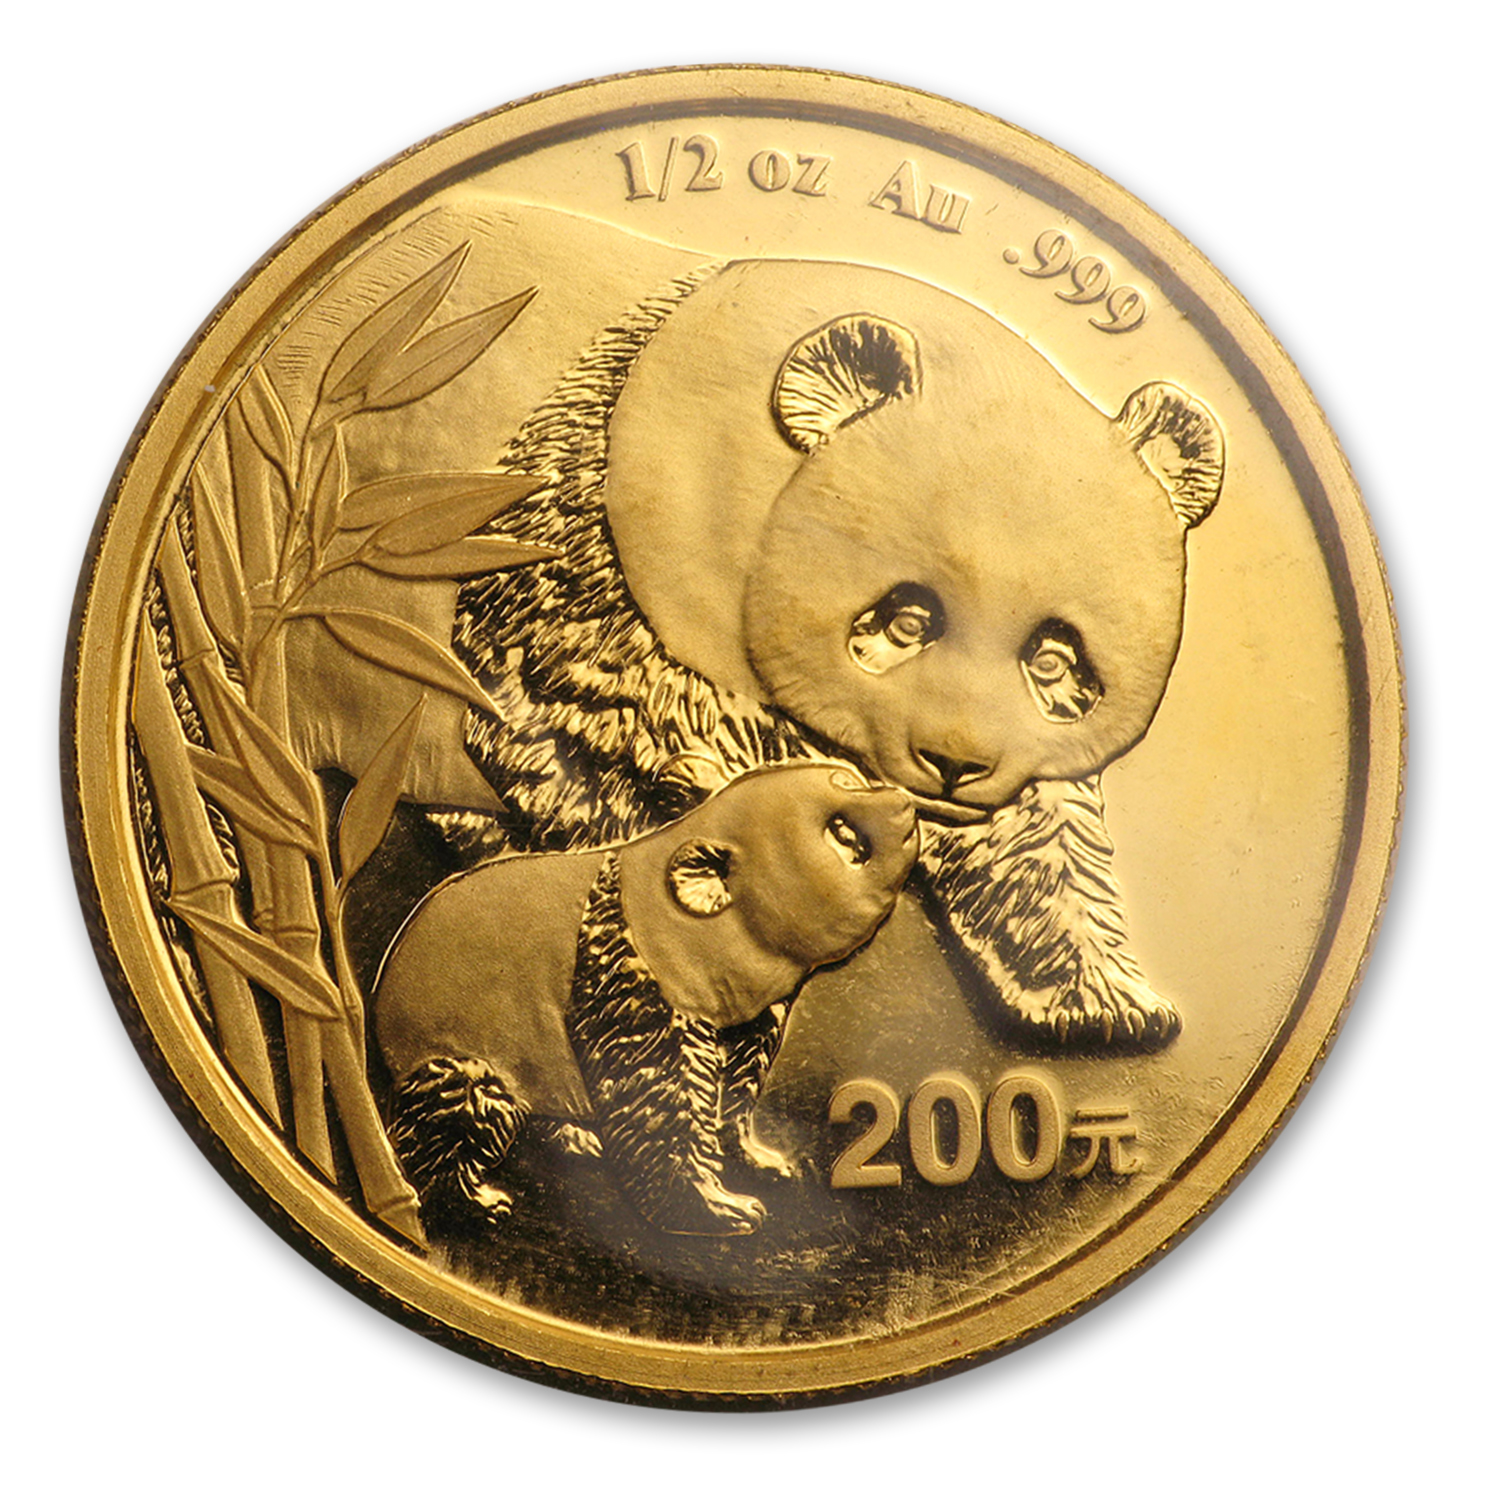 2004 China 1/2 oz Gold Panda BU (Sealed)